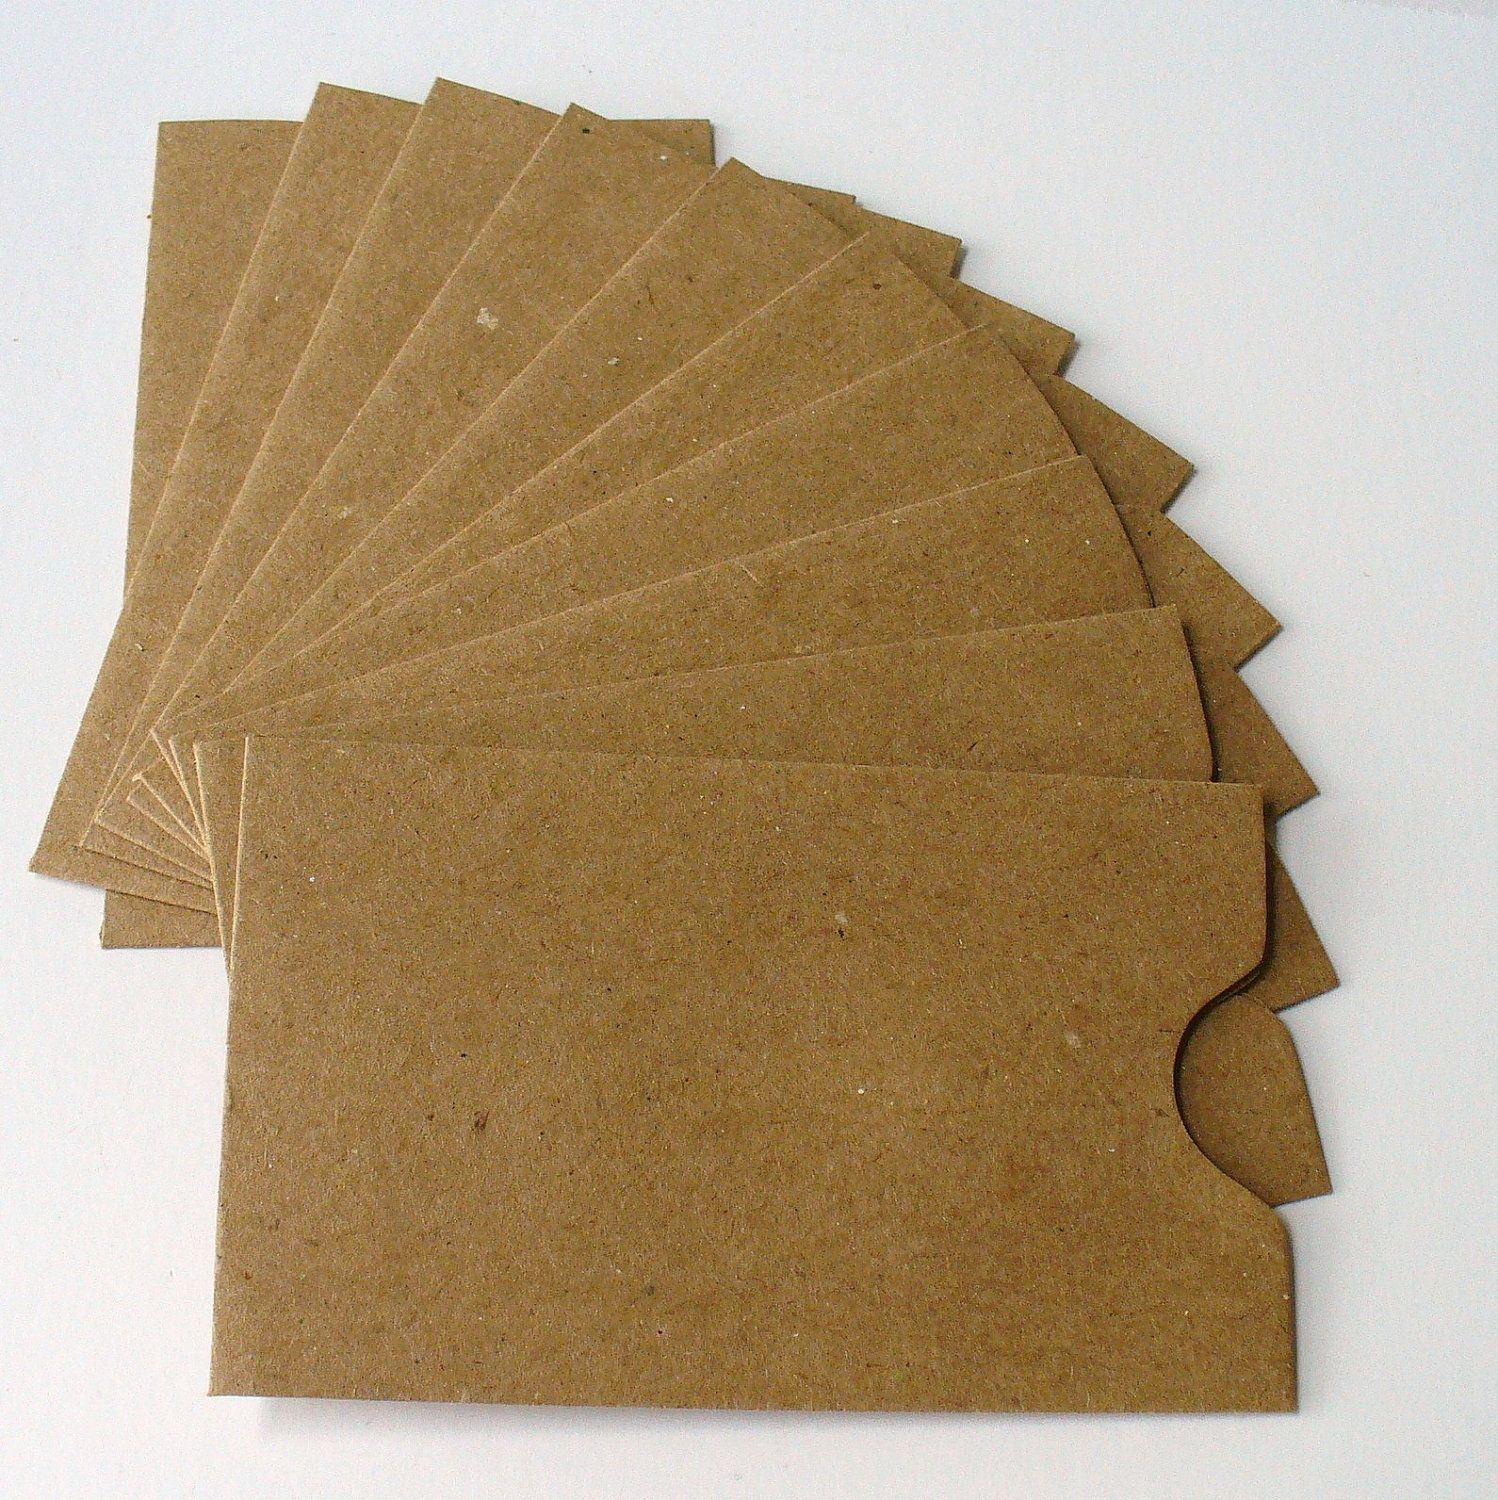 10 kraft paper gift card sleeves envelopes for photos  business